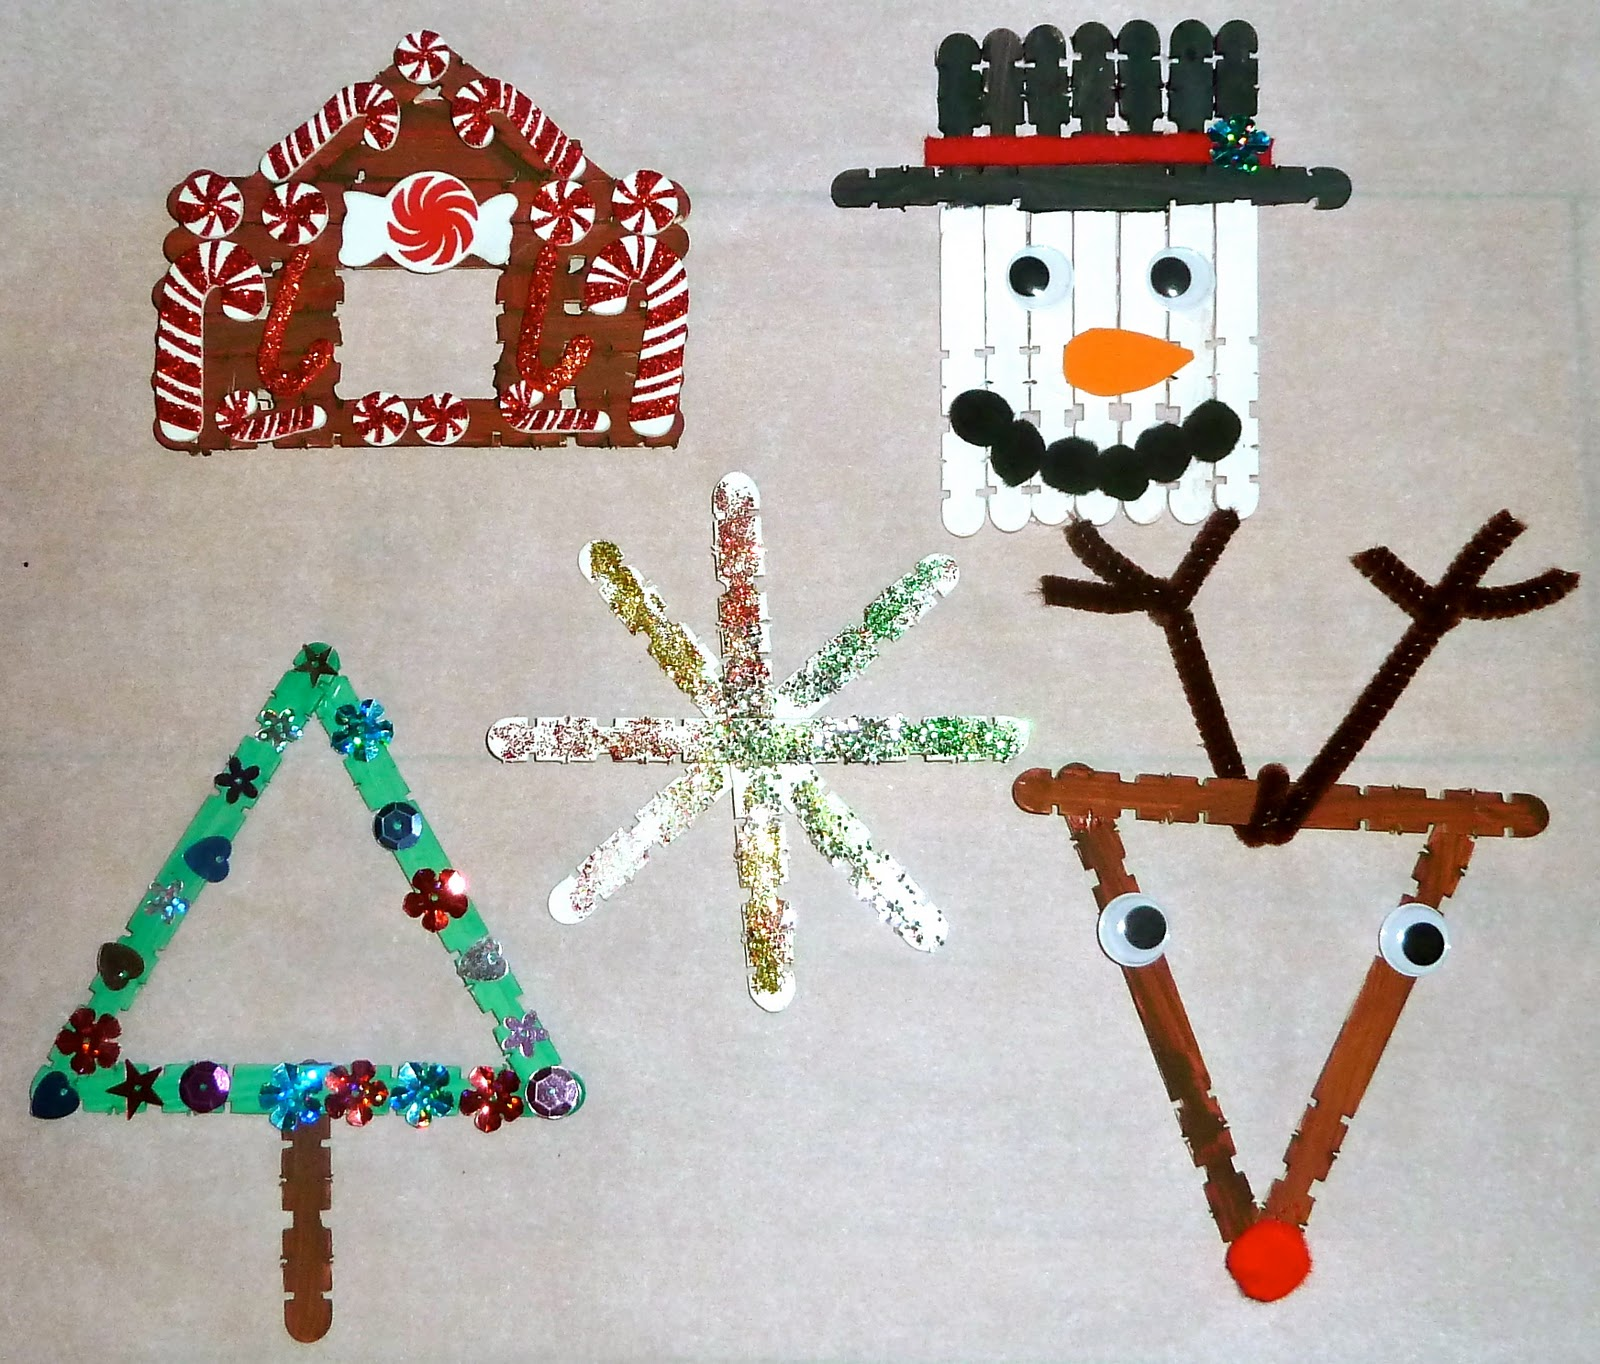 Making christmas decorations in school - Craft Stick Christmas Ornaments For Kids Homemade Christmas Crafts To Make At Home